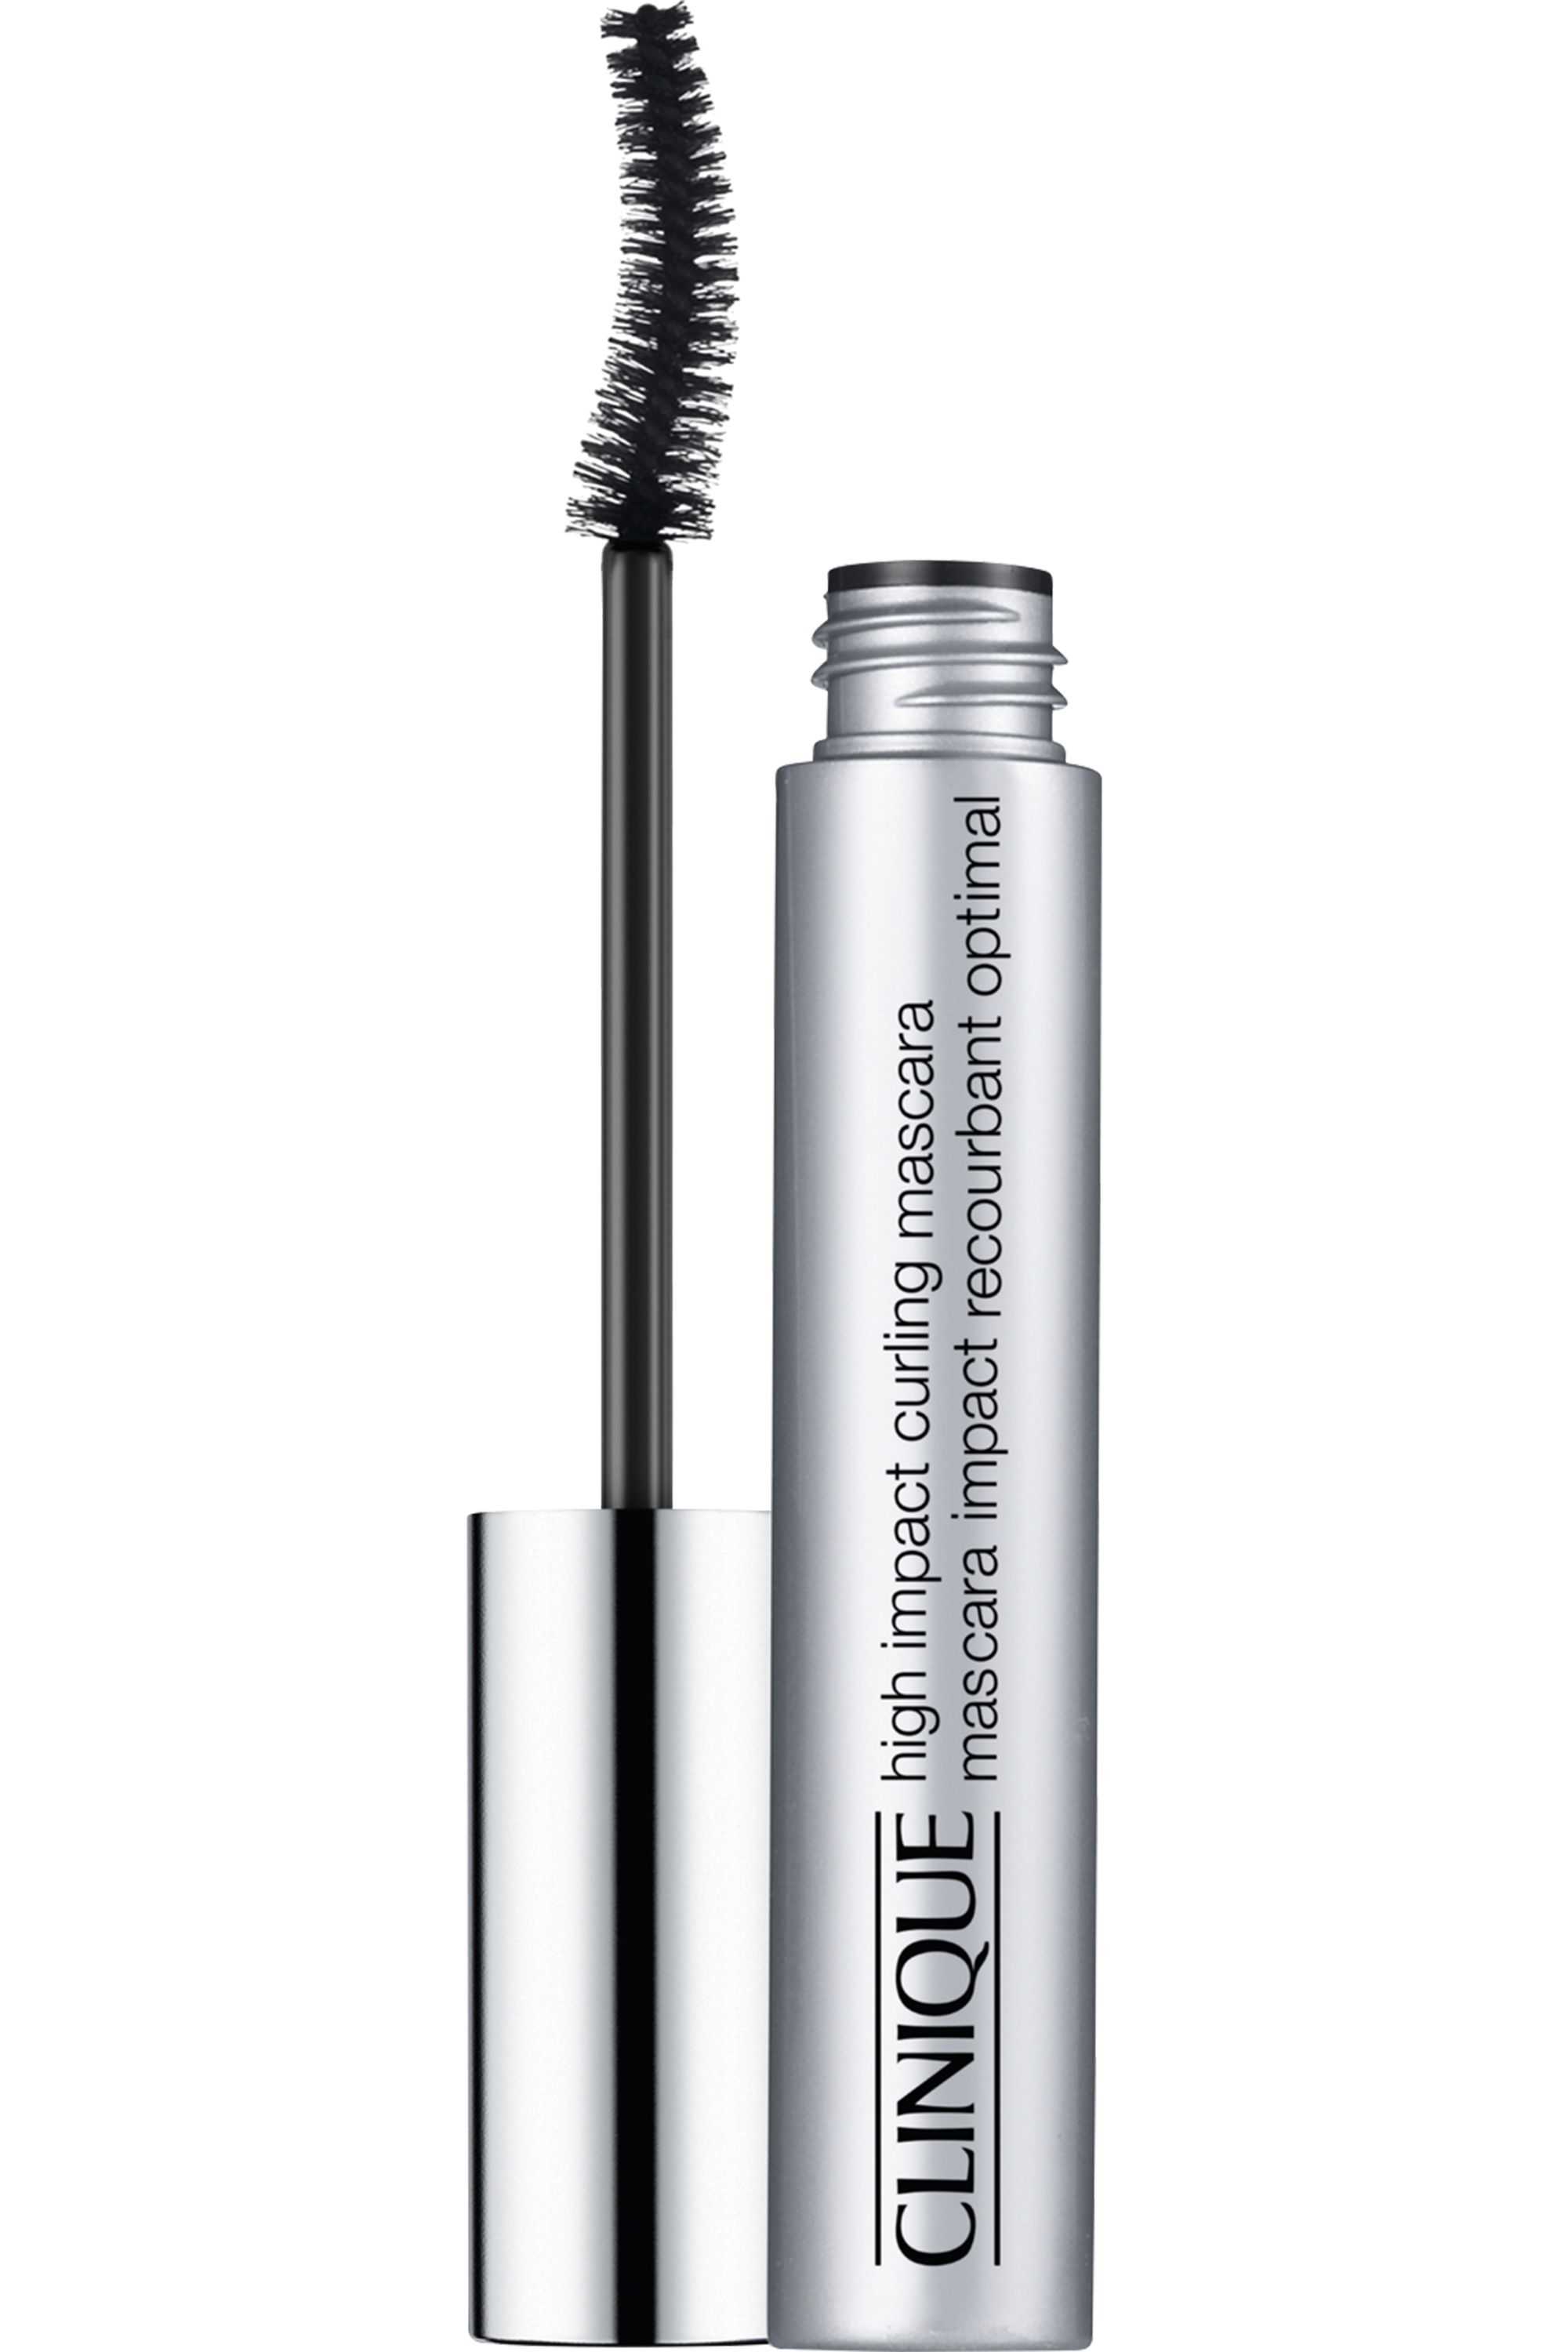 Blissim : Clinique - Mascara recourbant High Impact - Mascara recourbant High Impact